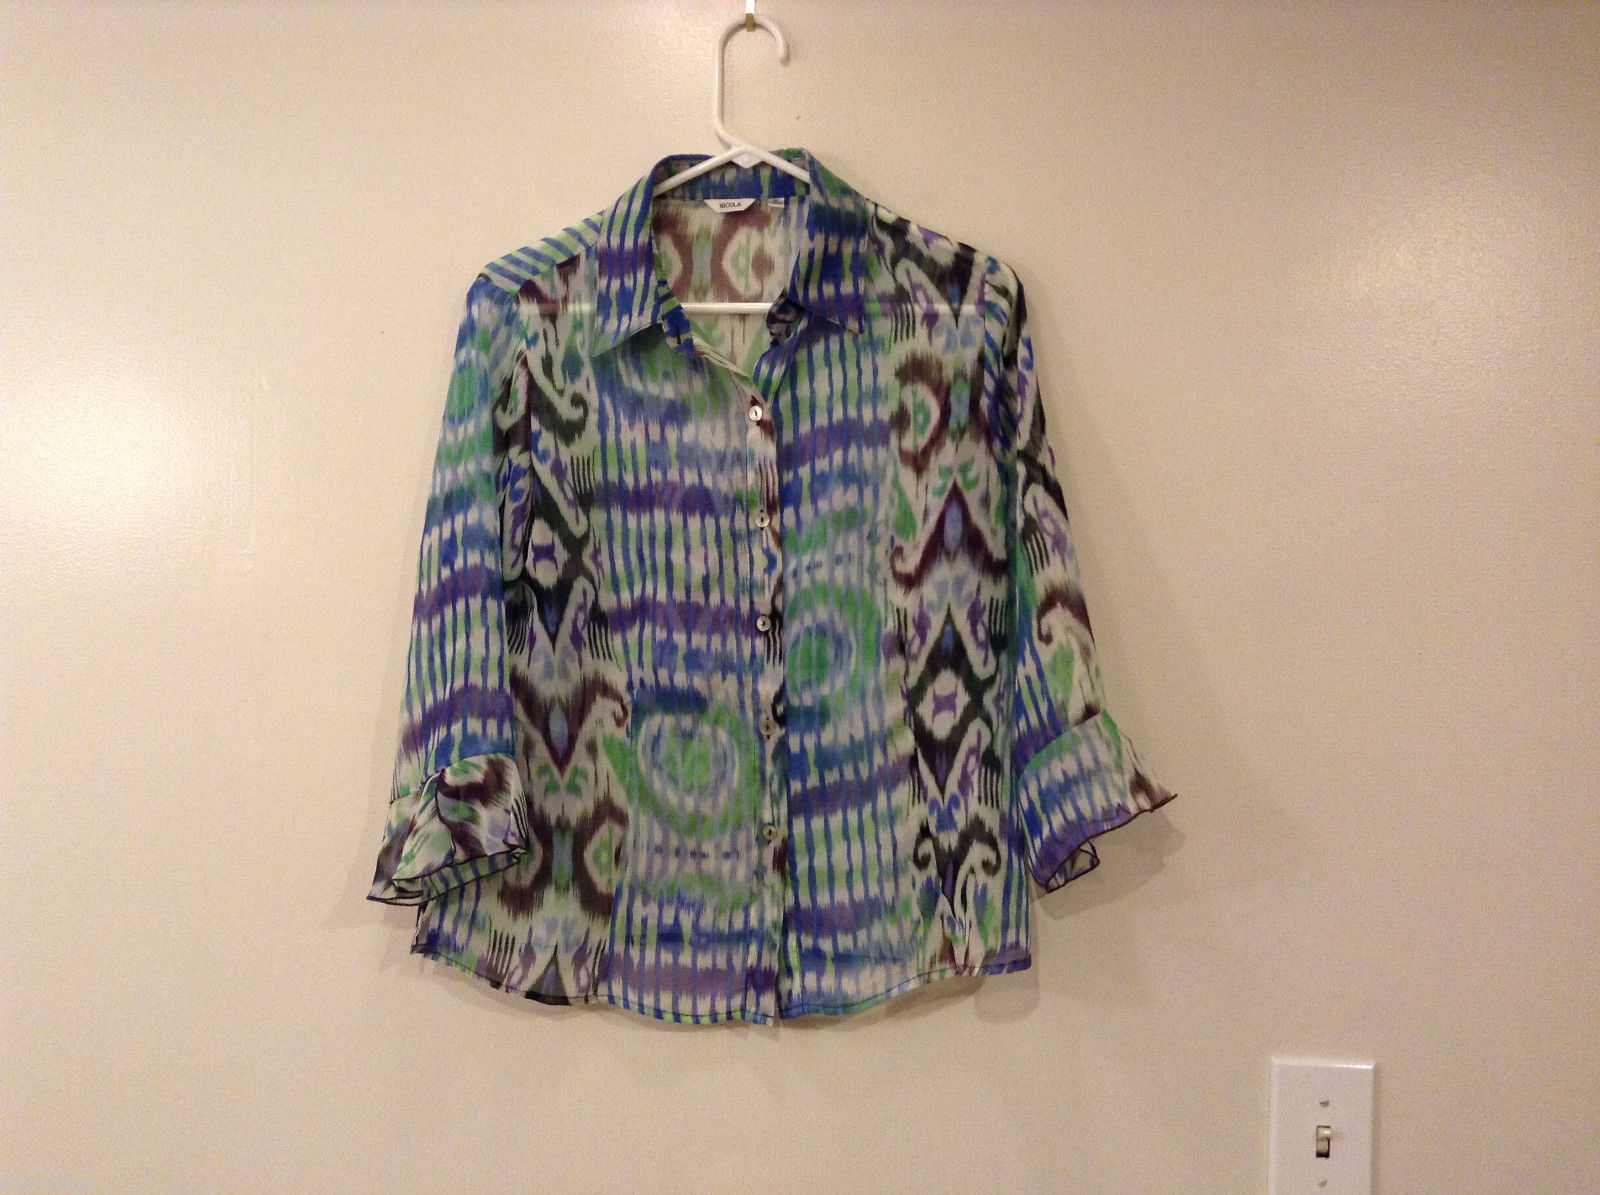 Nicola Women's Size M Button-Down Shirt Sheer Blouse Top Watercolor Blue Green